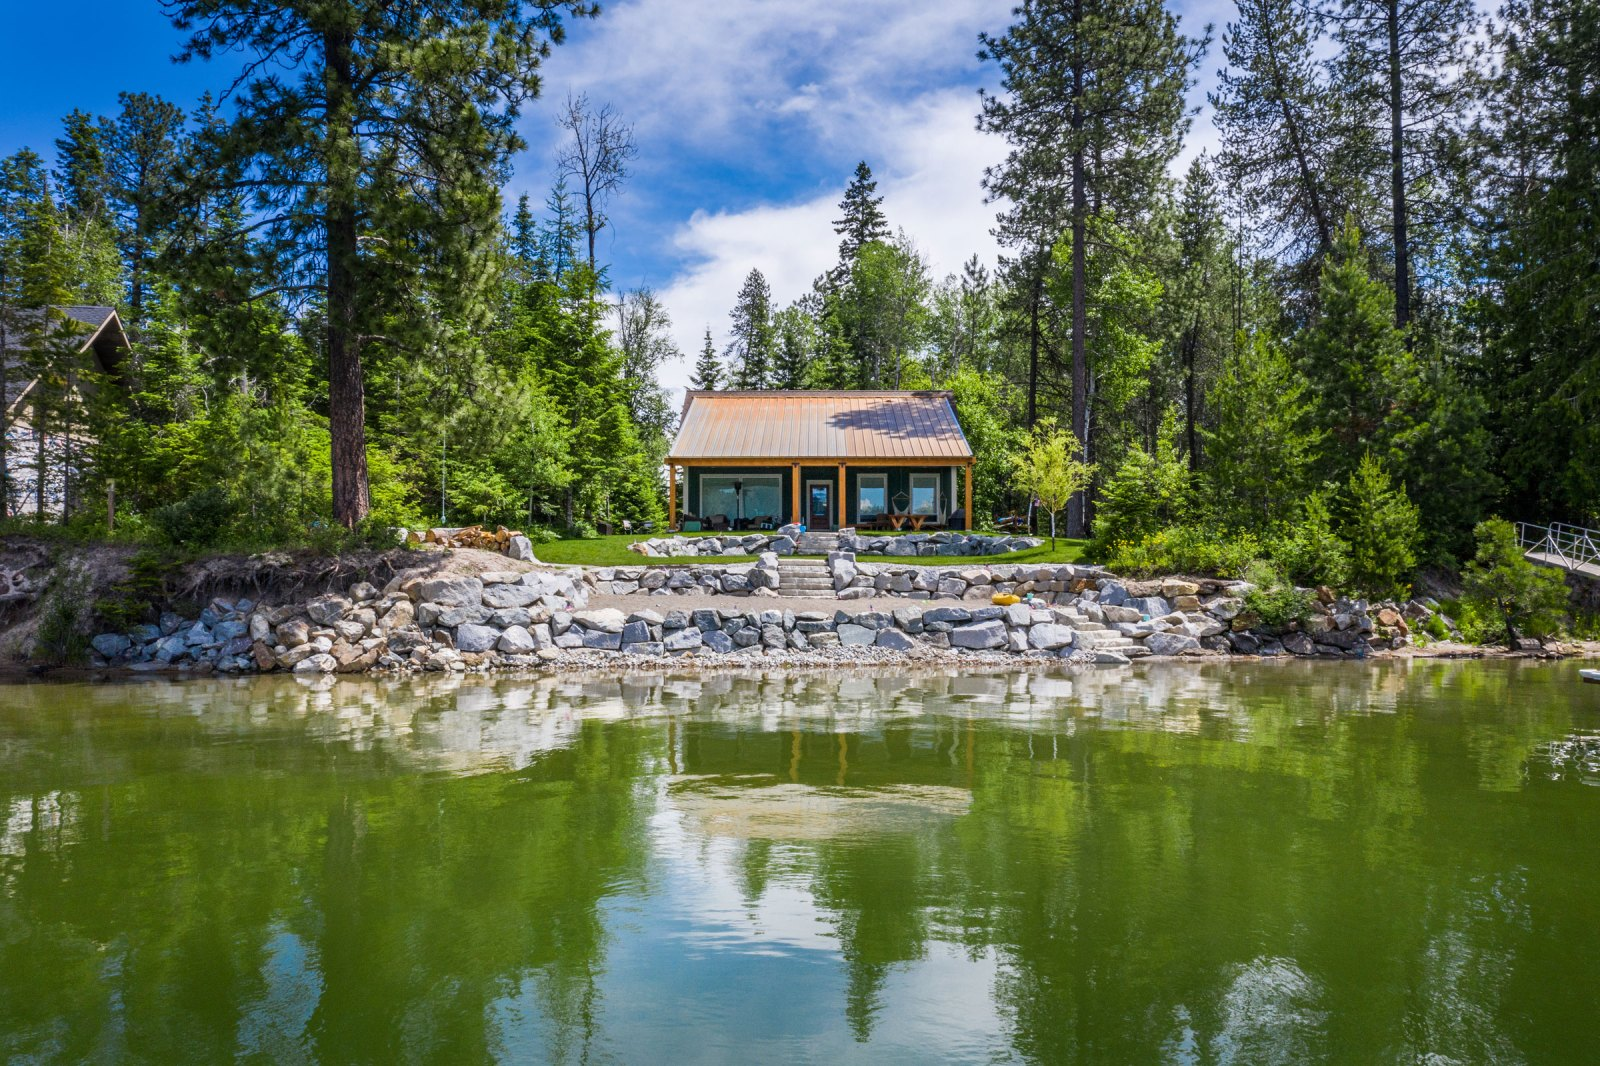 Real Estate Photography Spokane - Everyday I'm HOVERIN